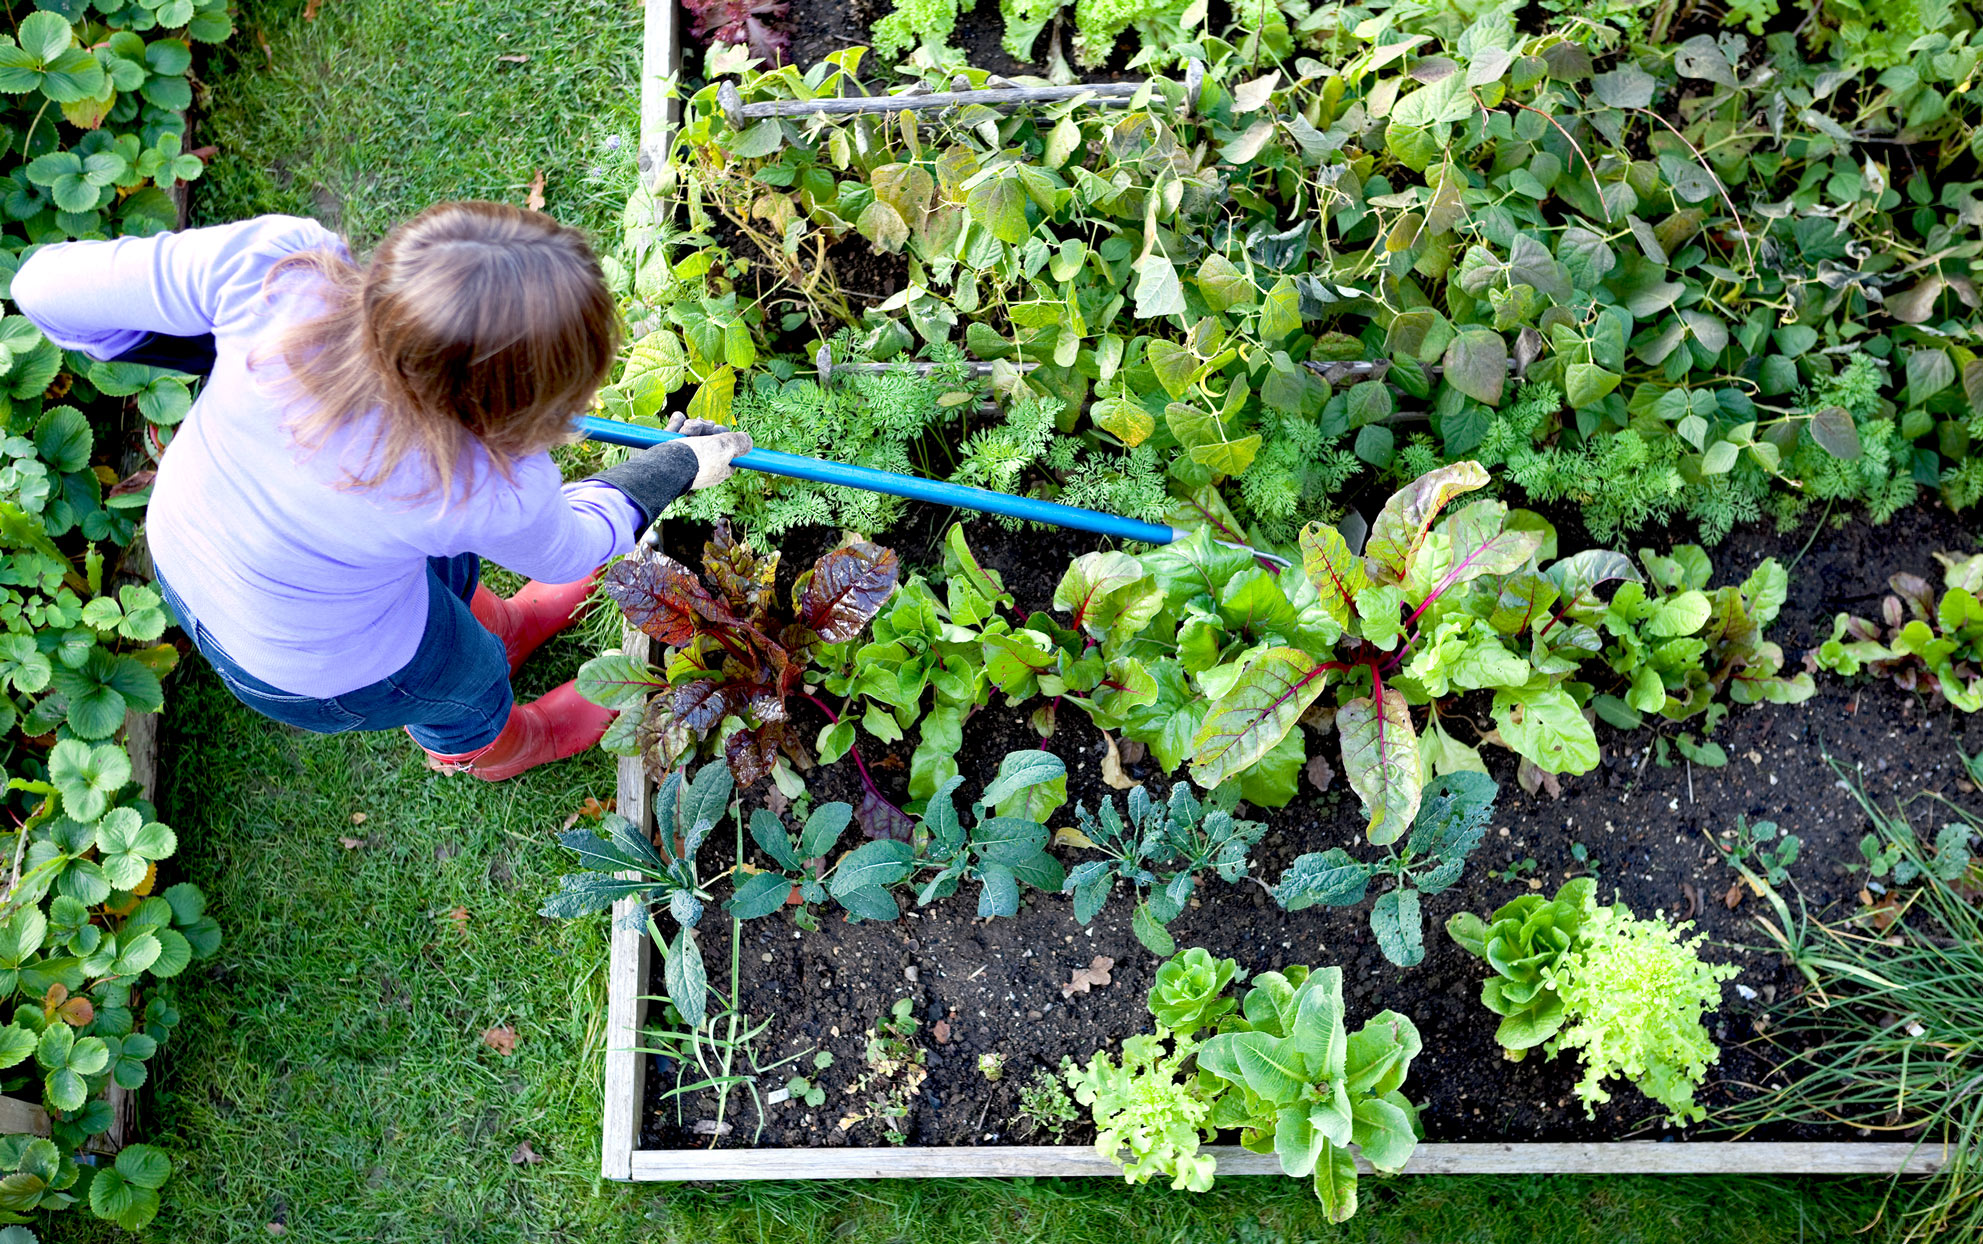 Overhead view of a woman tending to a raised garden bed